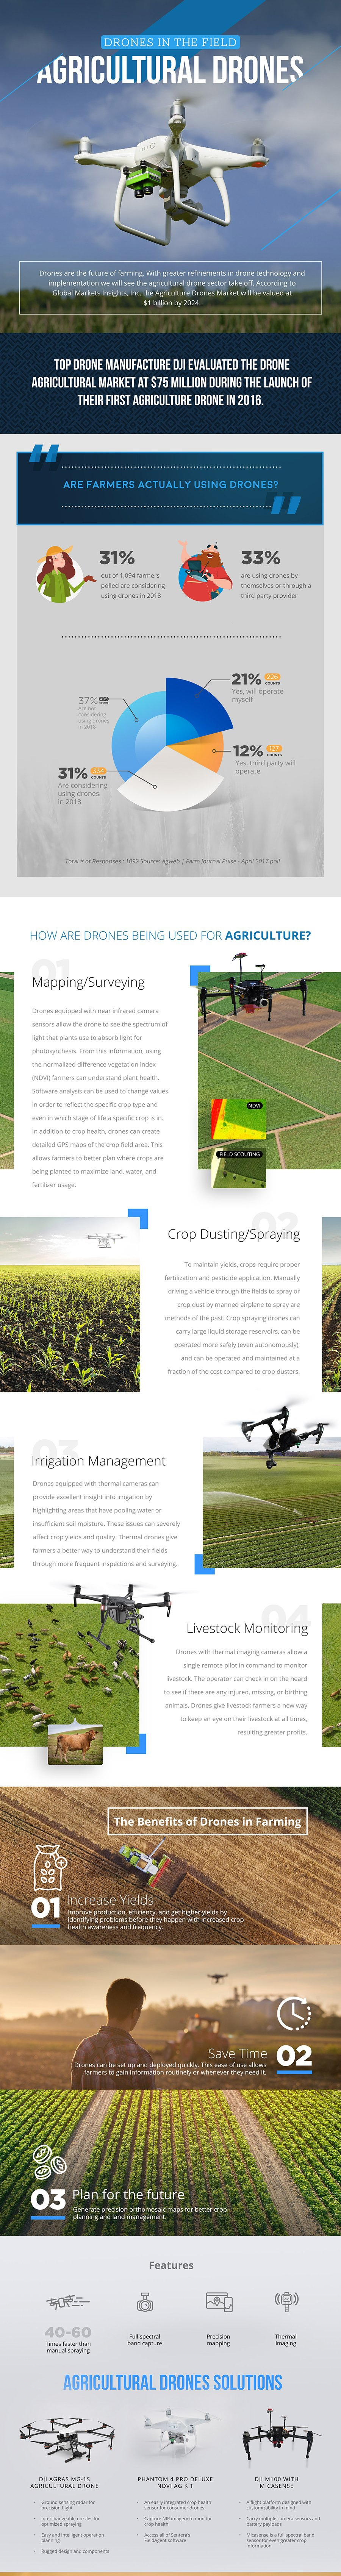 Agriculture Drones Infographic